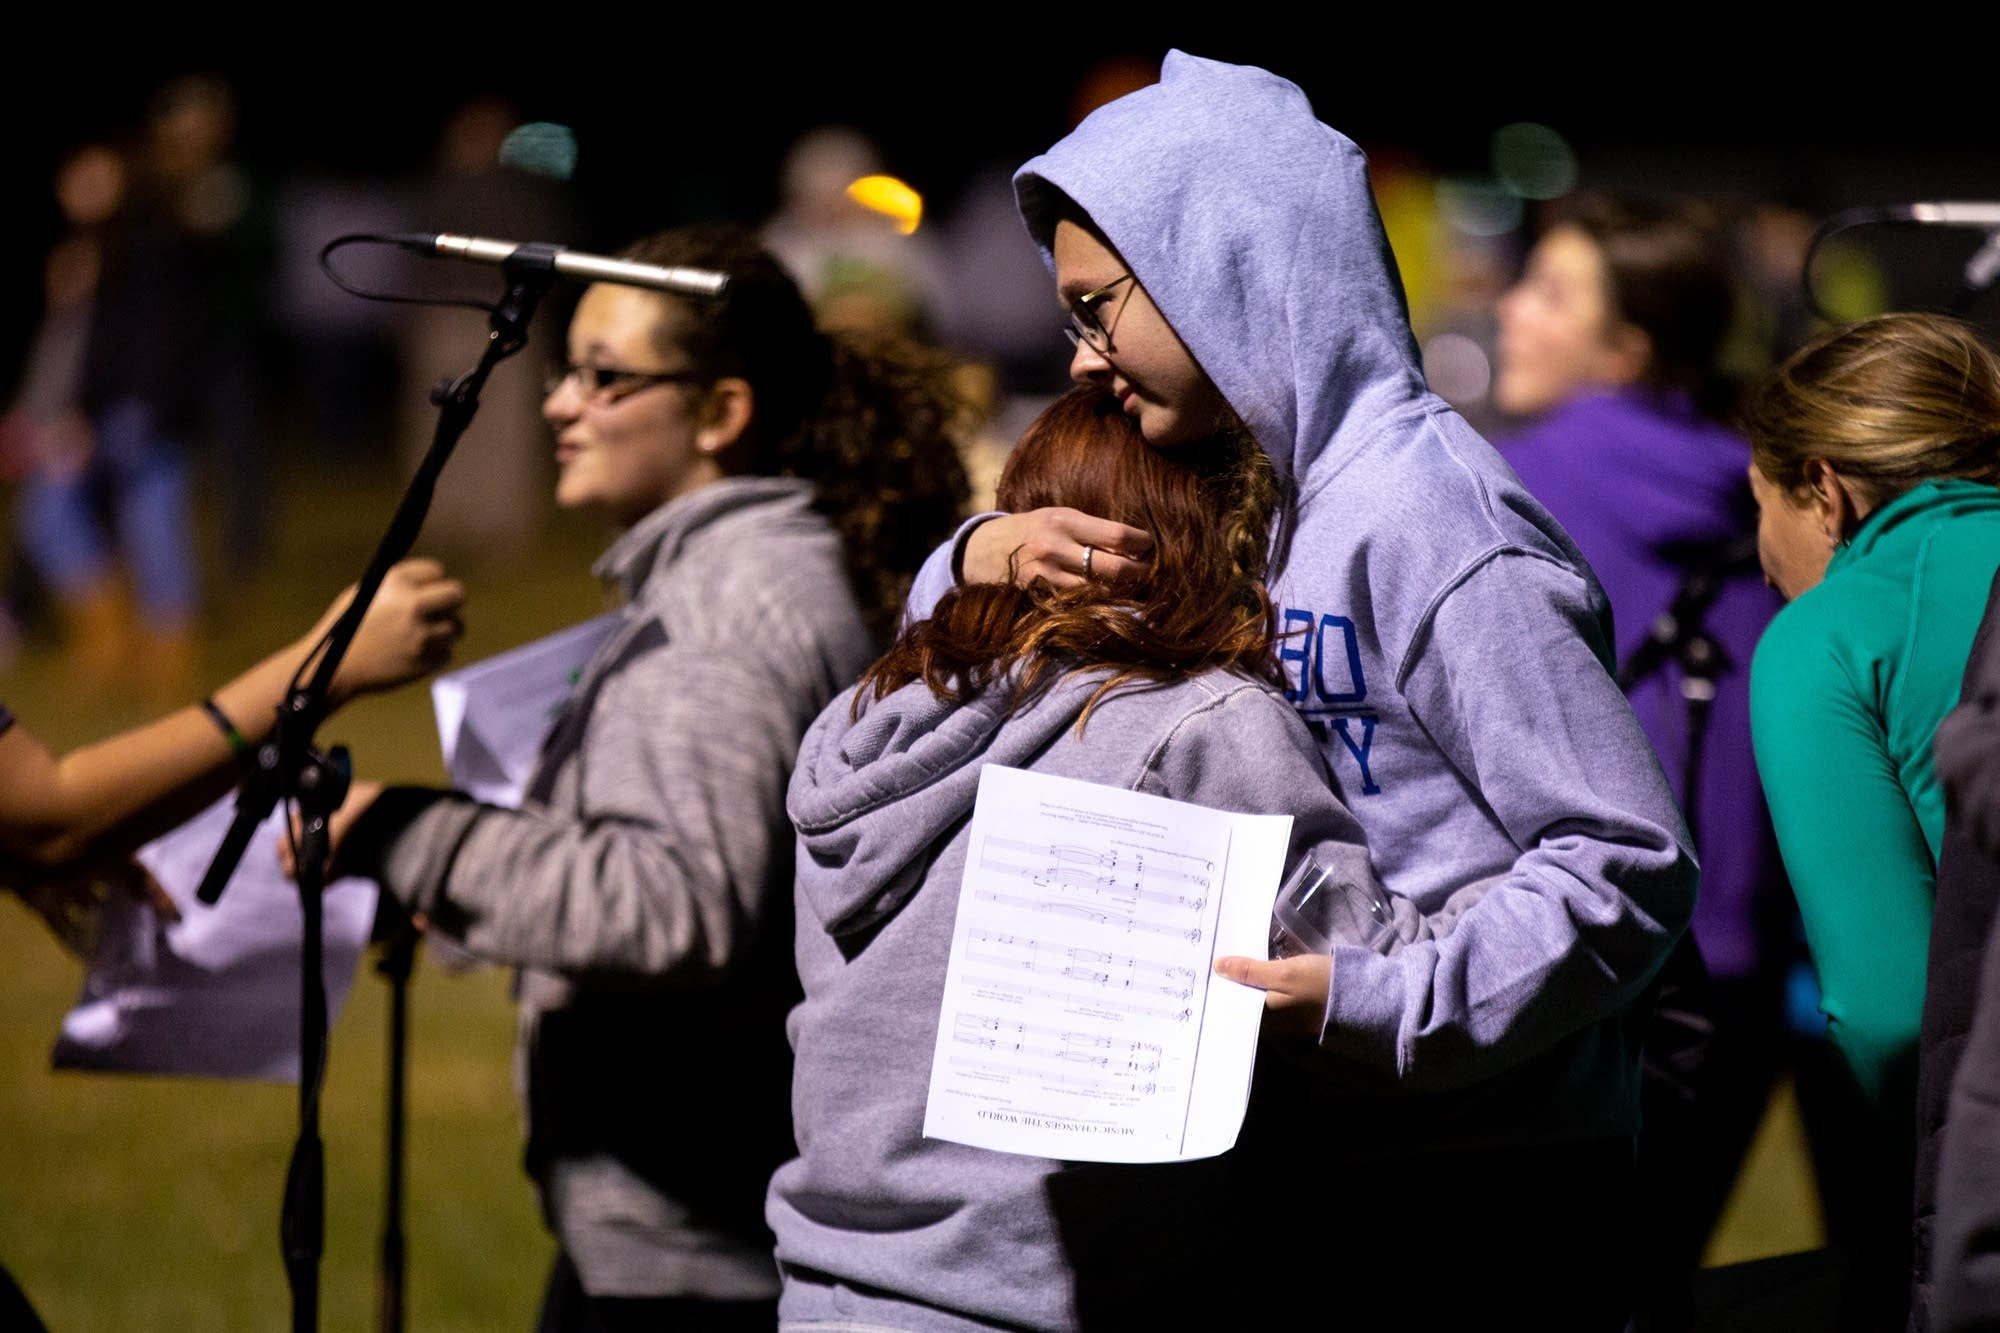 Two students hug after singing at a